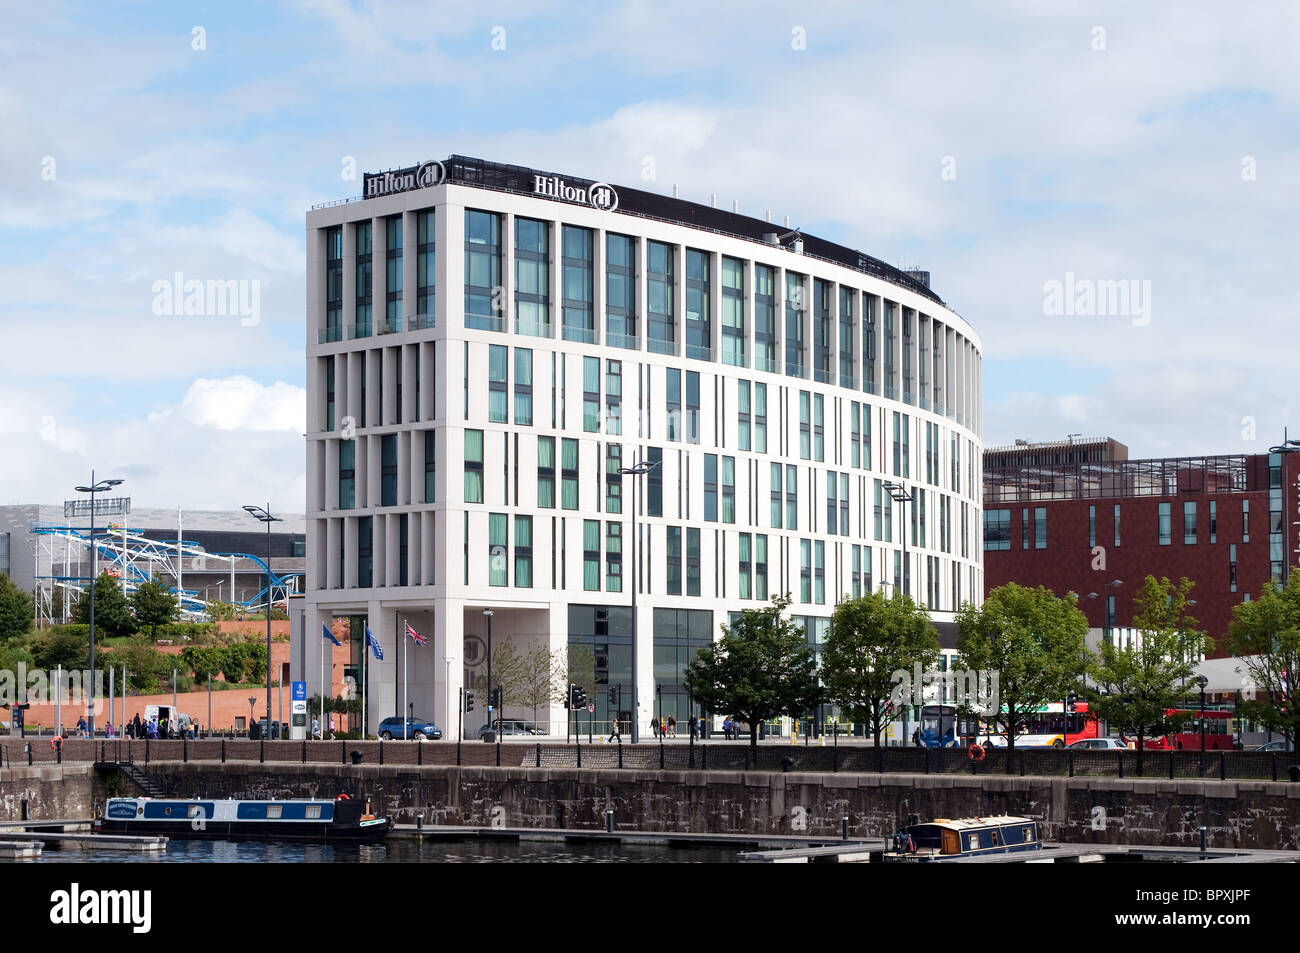 The Hilton Hotel on the dock road in Liverpool, UK - Stock Image